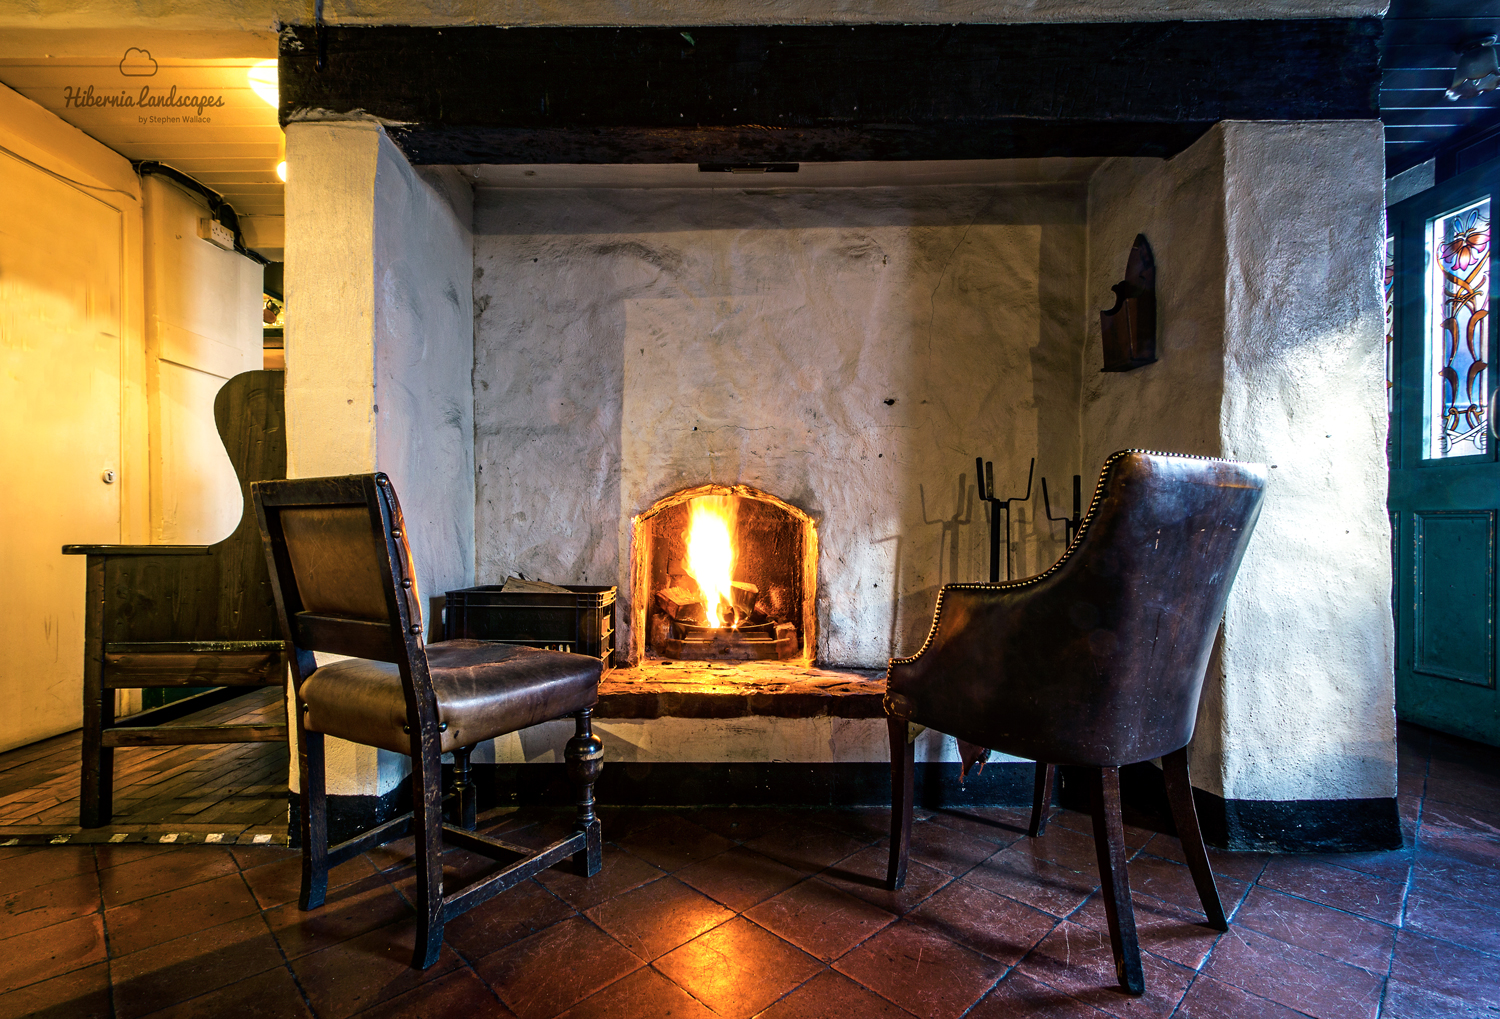 The snug bar, which was part of the original living quarters in the pub.  This fireplace has remained unchanged since the 1750s.